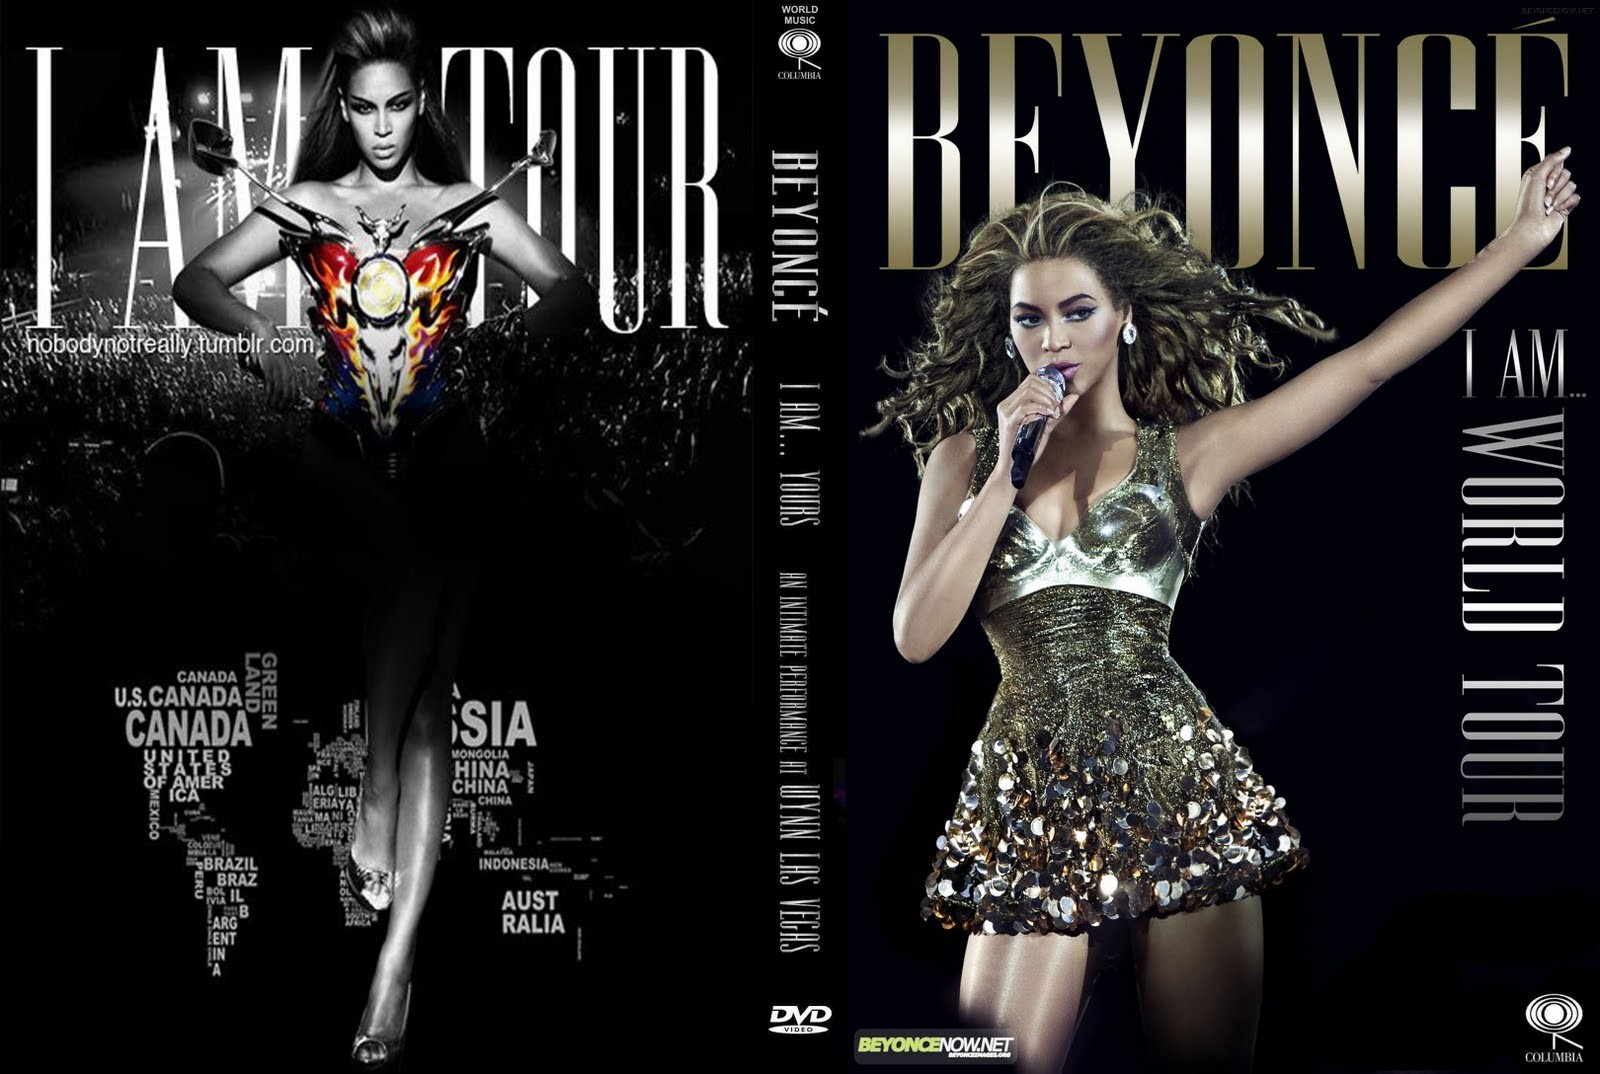 beyonce i am world tour diva - photo #4